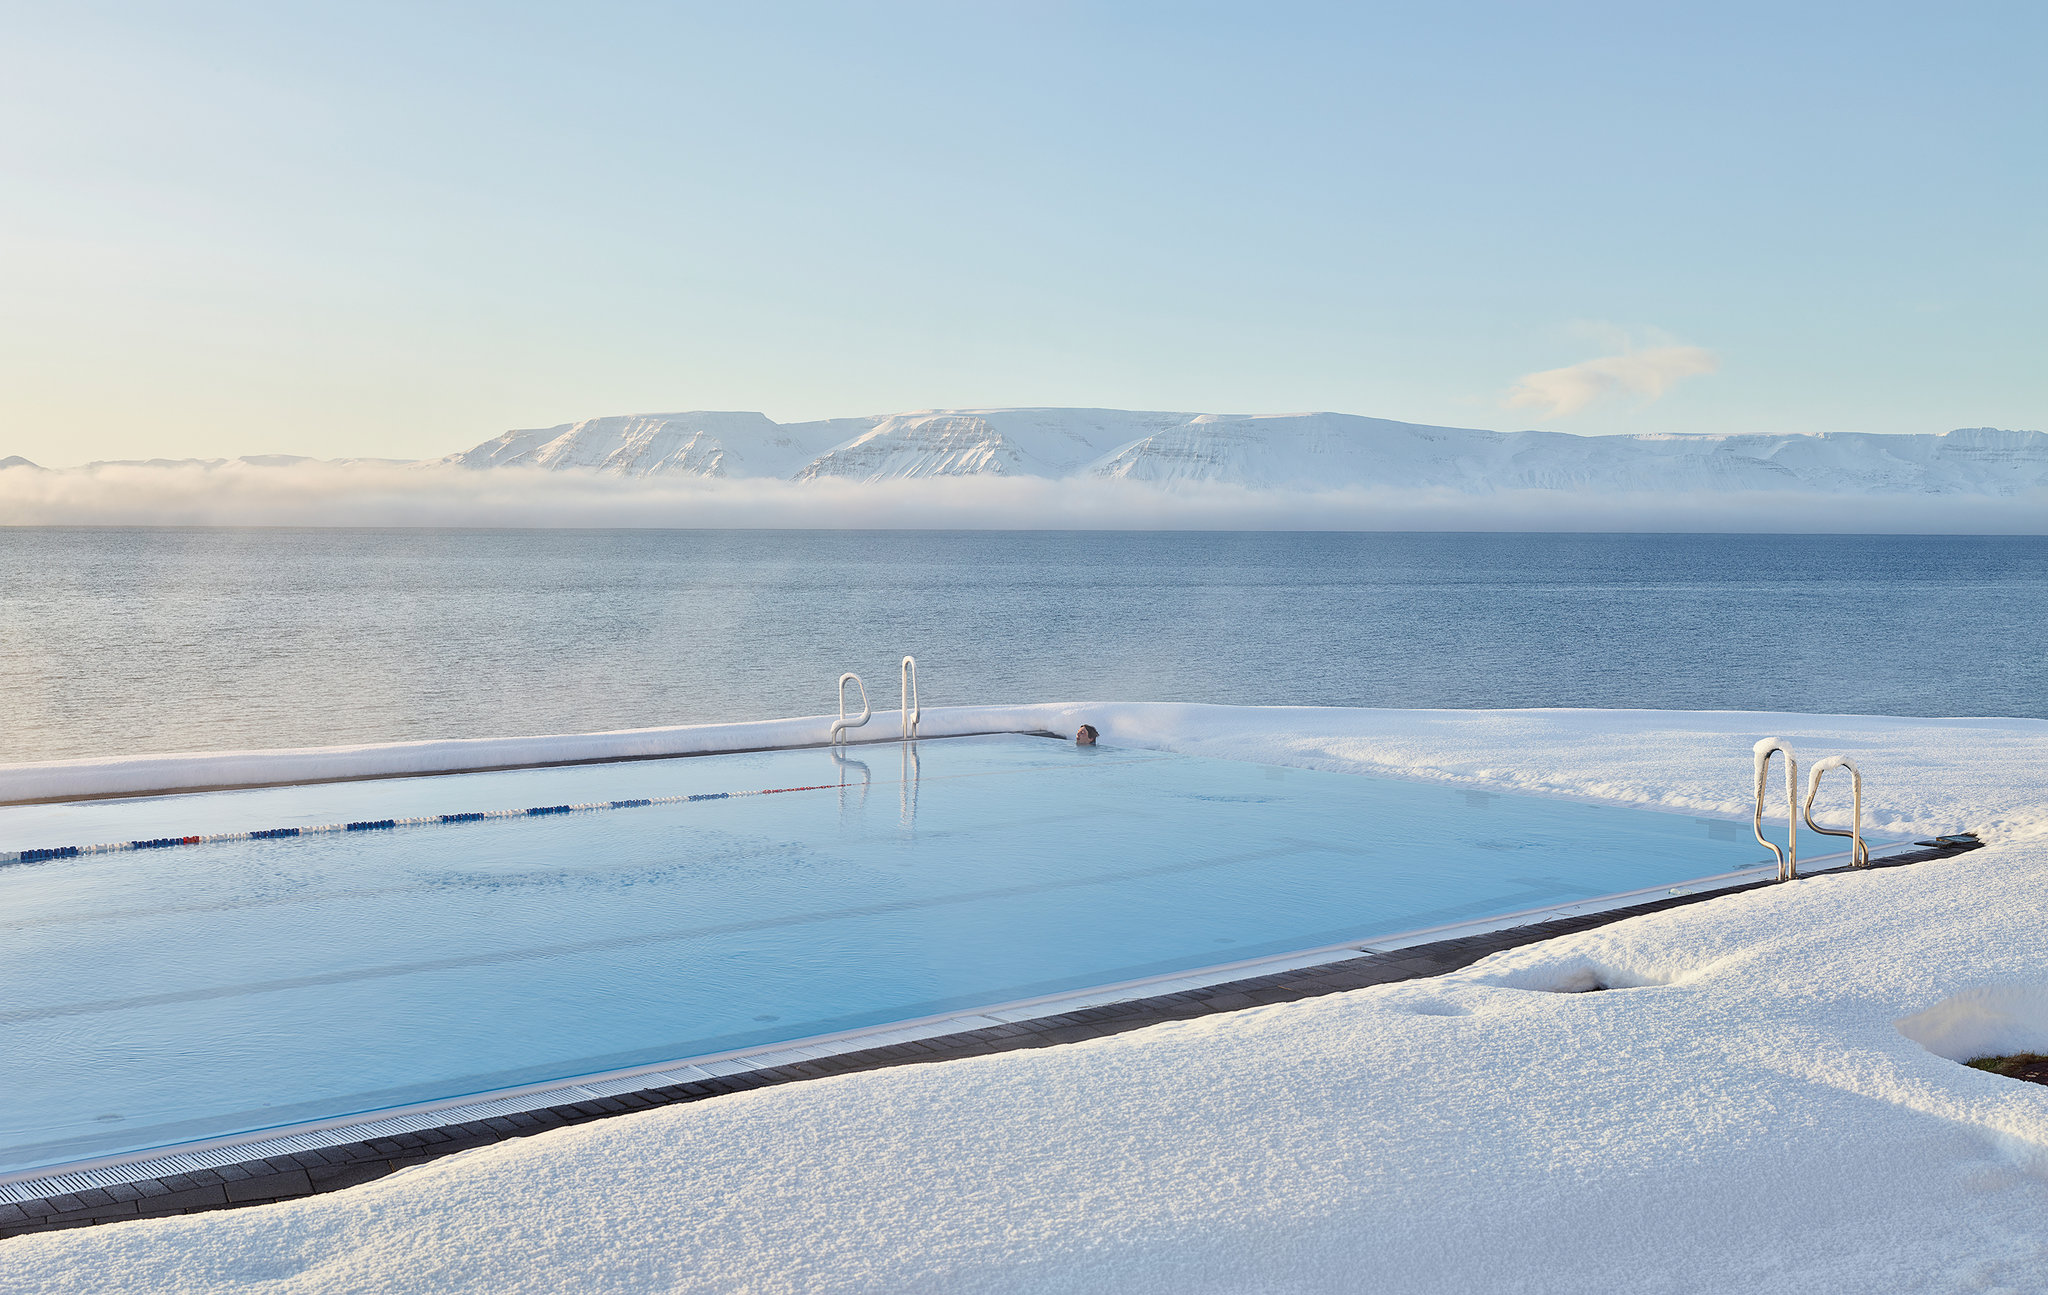 The pool in Hofsos, an old trading port on the northern coast. Credit Massimo Vitali for The New York Times